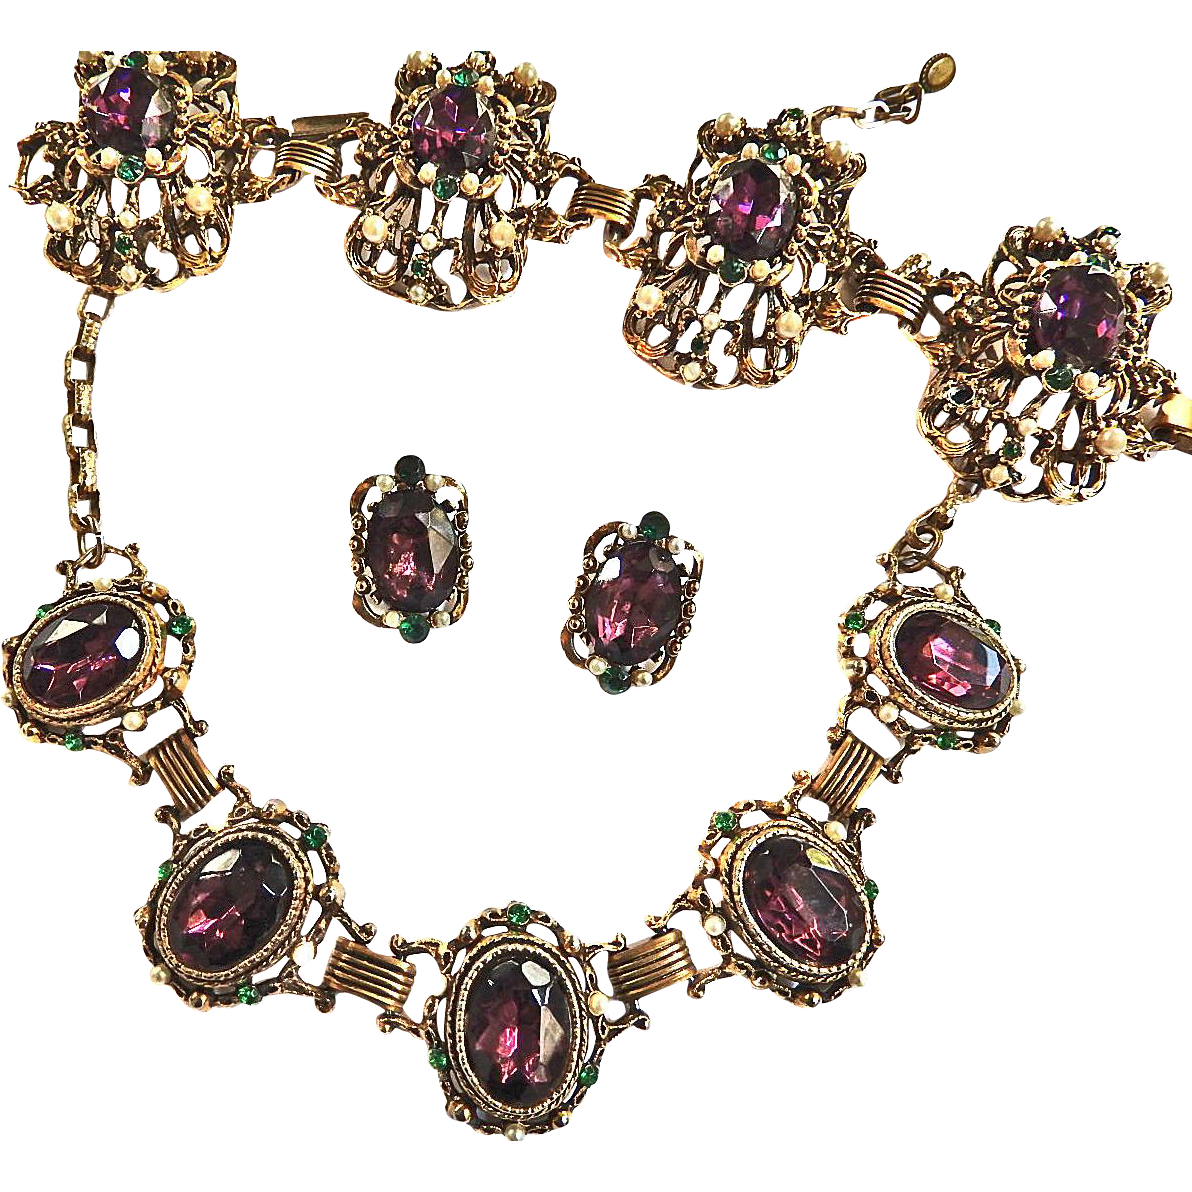 Fabulous Designer Amethyst Huge Vintage Necklace Bracelet  Earrings Rhinestone Faux Pearls